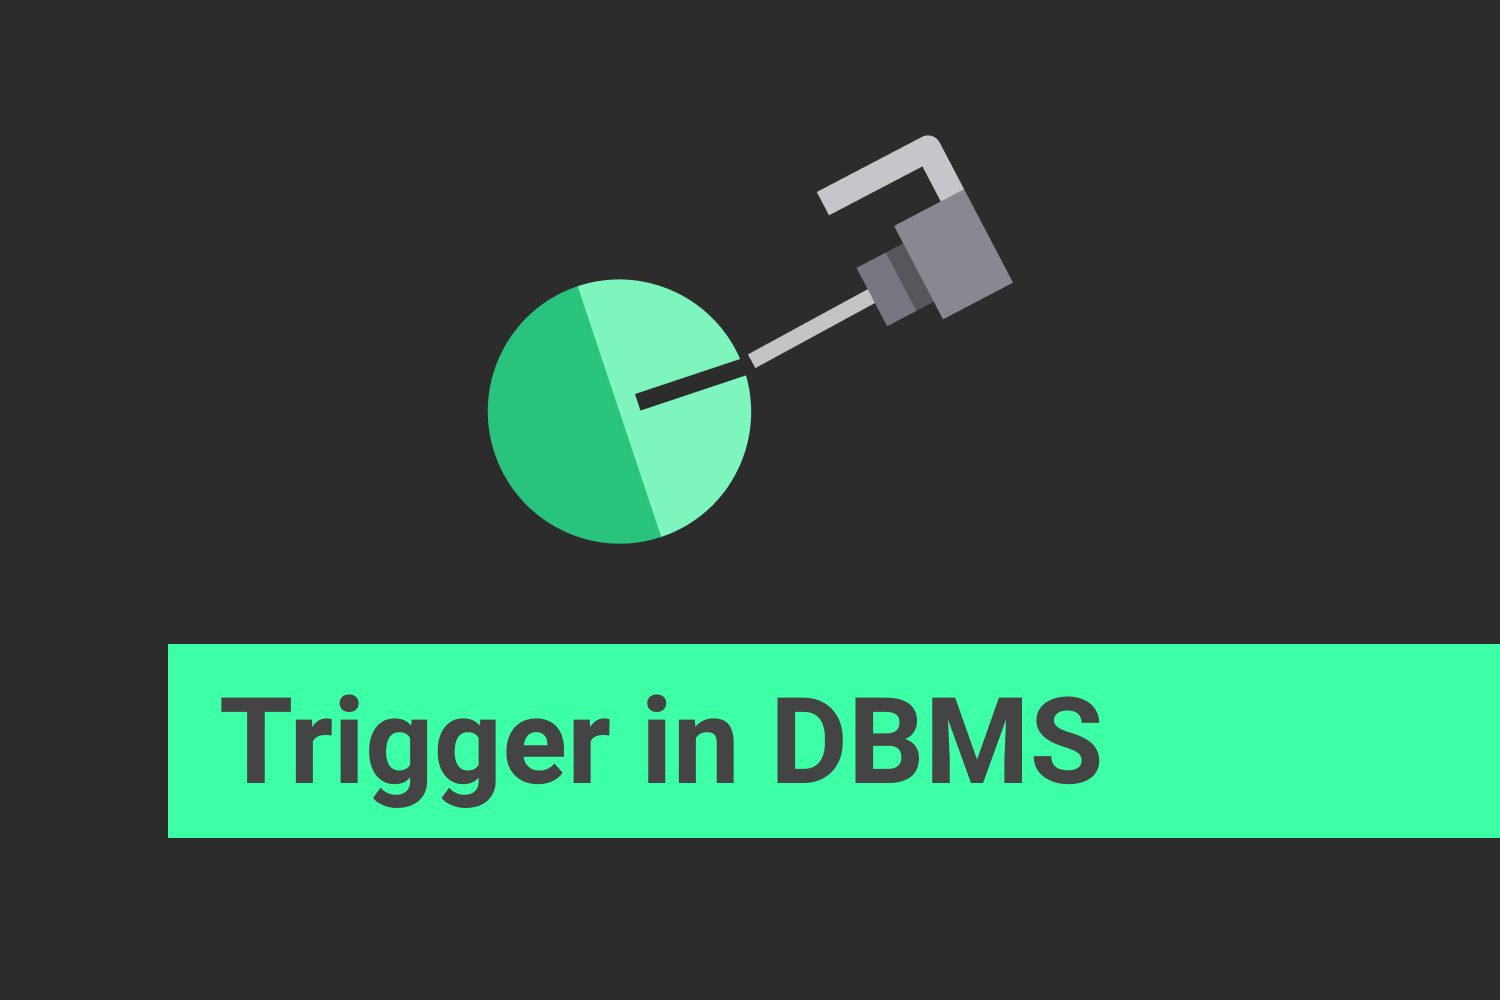 What is a Trigger in DBMS?